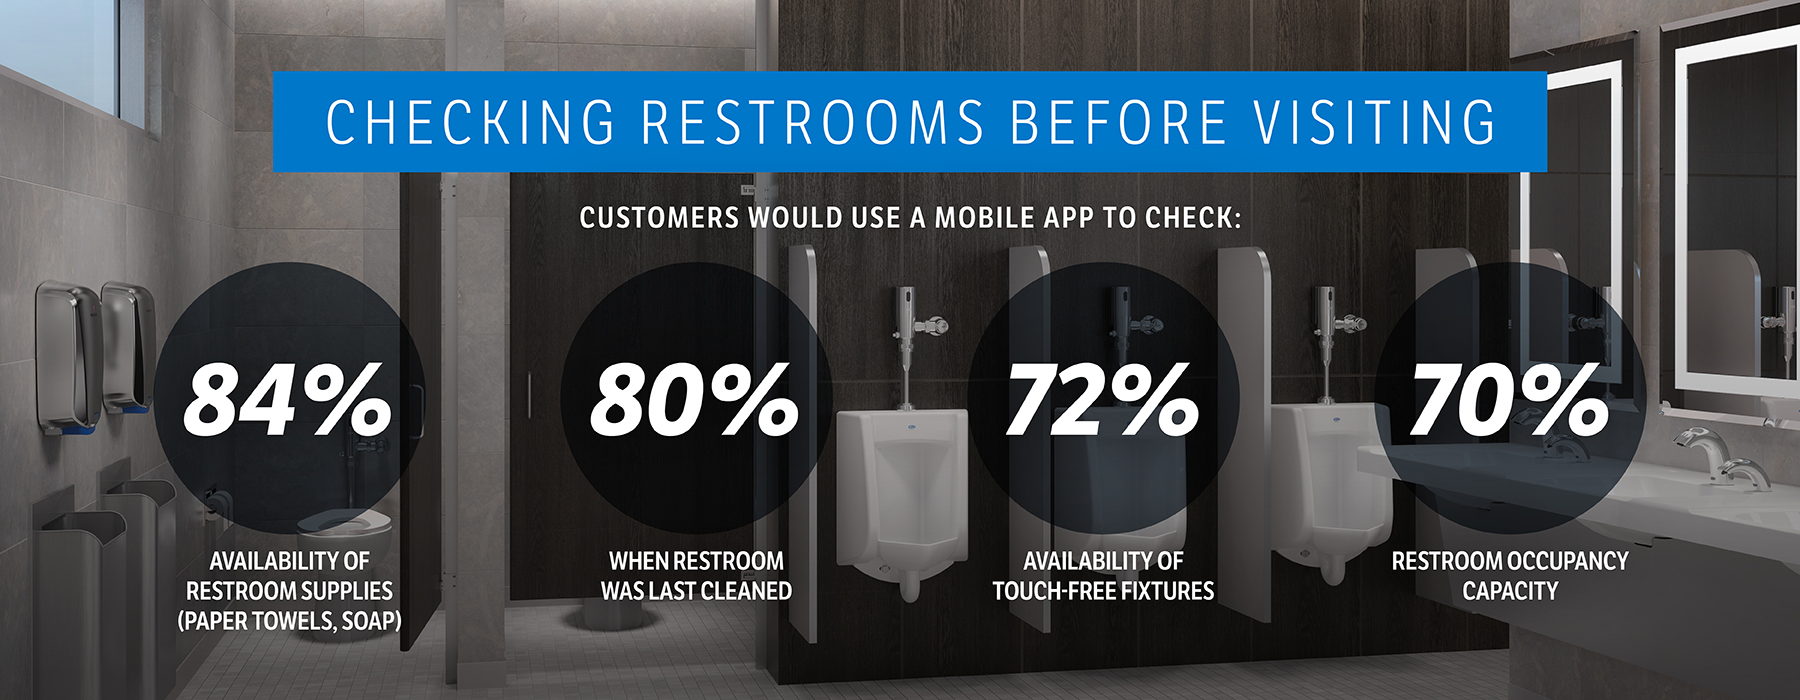 000-052 Restroom Experience Survey - Blog Post Graphics 1800x700px_02